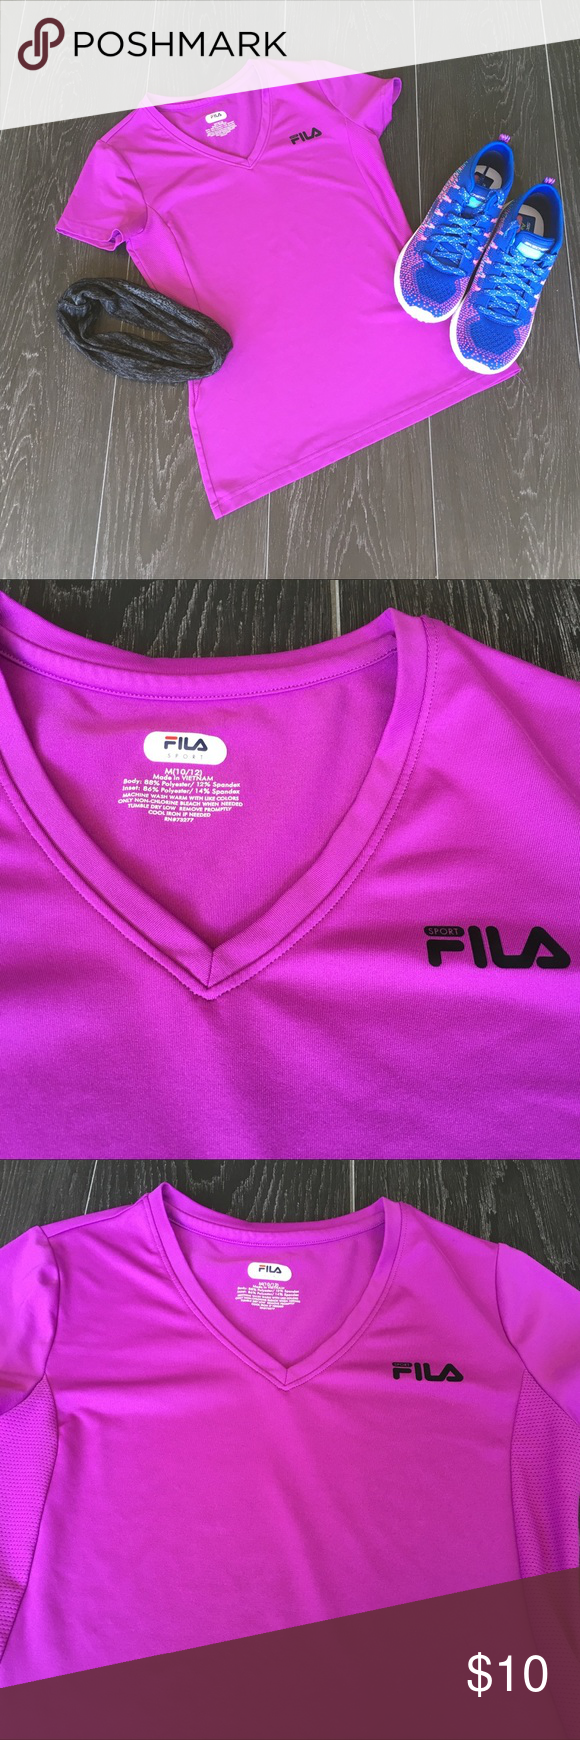 fe0533a88 💖SALE💖Girls Sport Shirt Girls purple dri-fit Fila shirt size 10/12. In  EXCELLENT condition! No snags or flaws! From a pet and smoke free home!